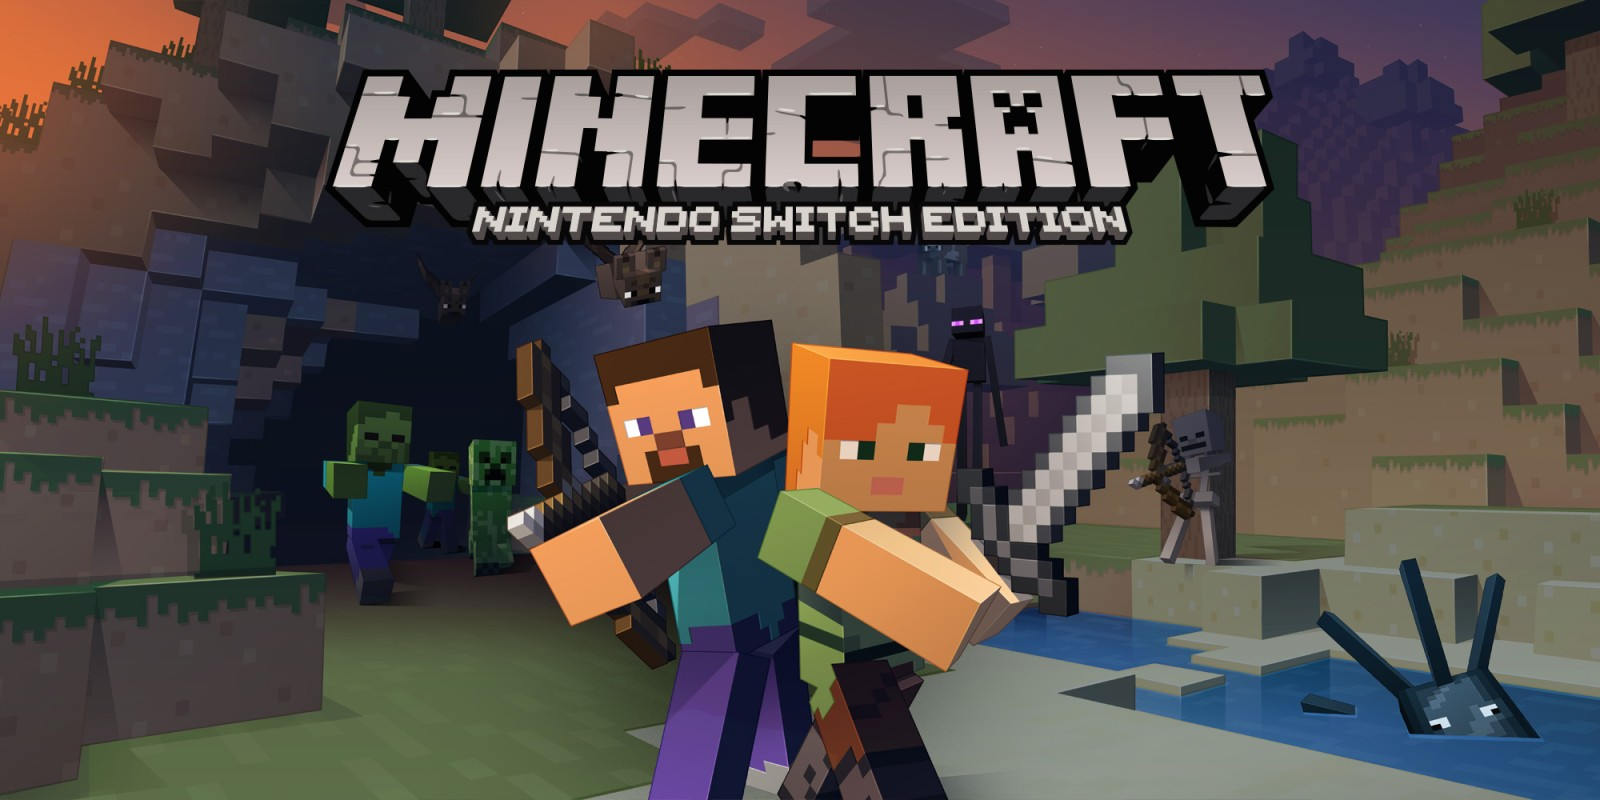 Minecraft Nintendo Switch Edition Nintendo Switch Spiele Nintendo - Minecraft spielen pc download